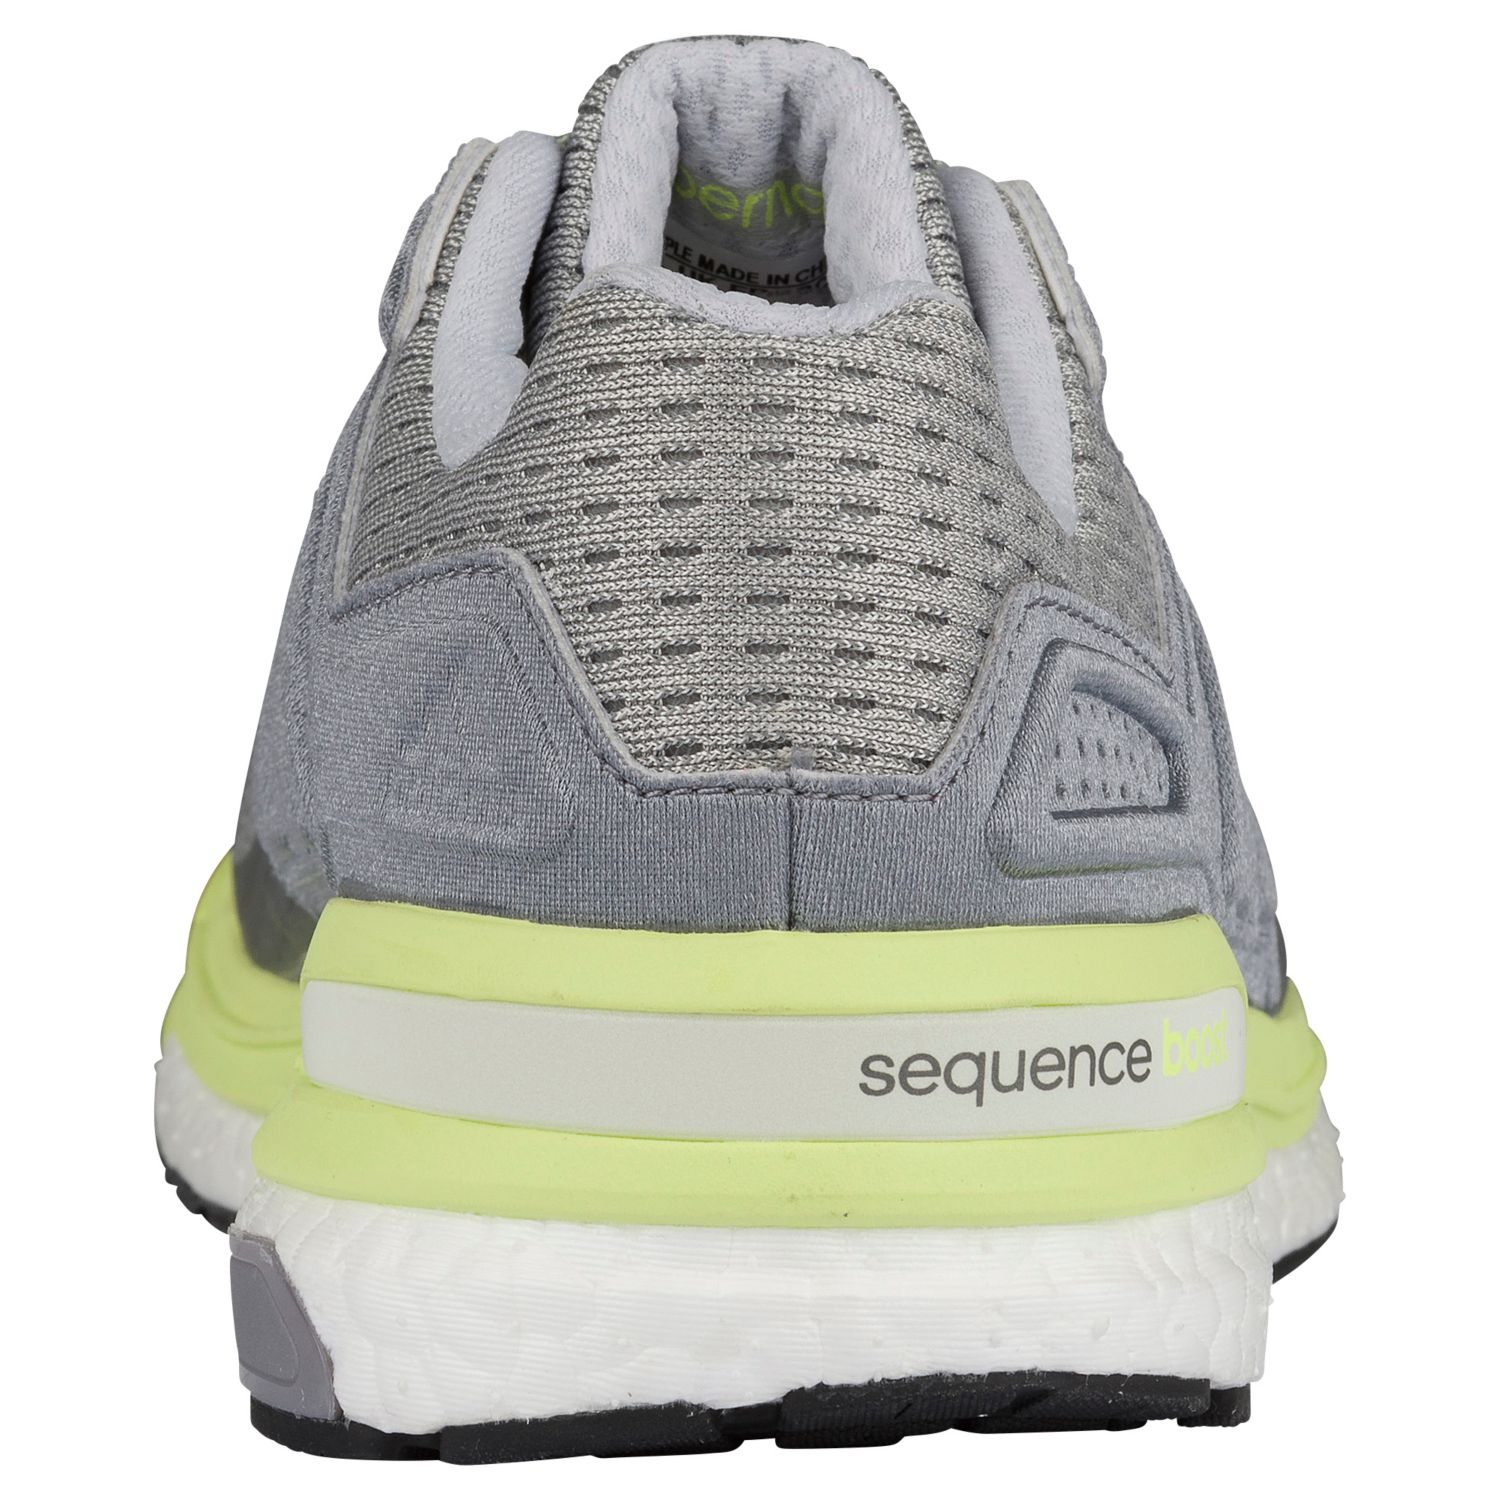 Supernova Sequence Boost 8 W